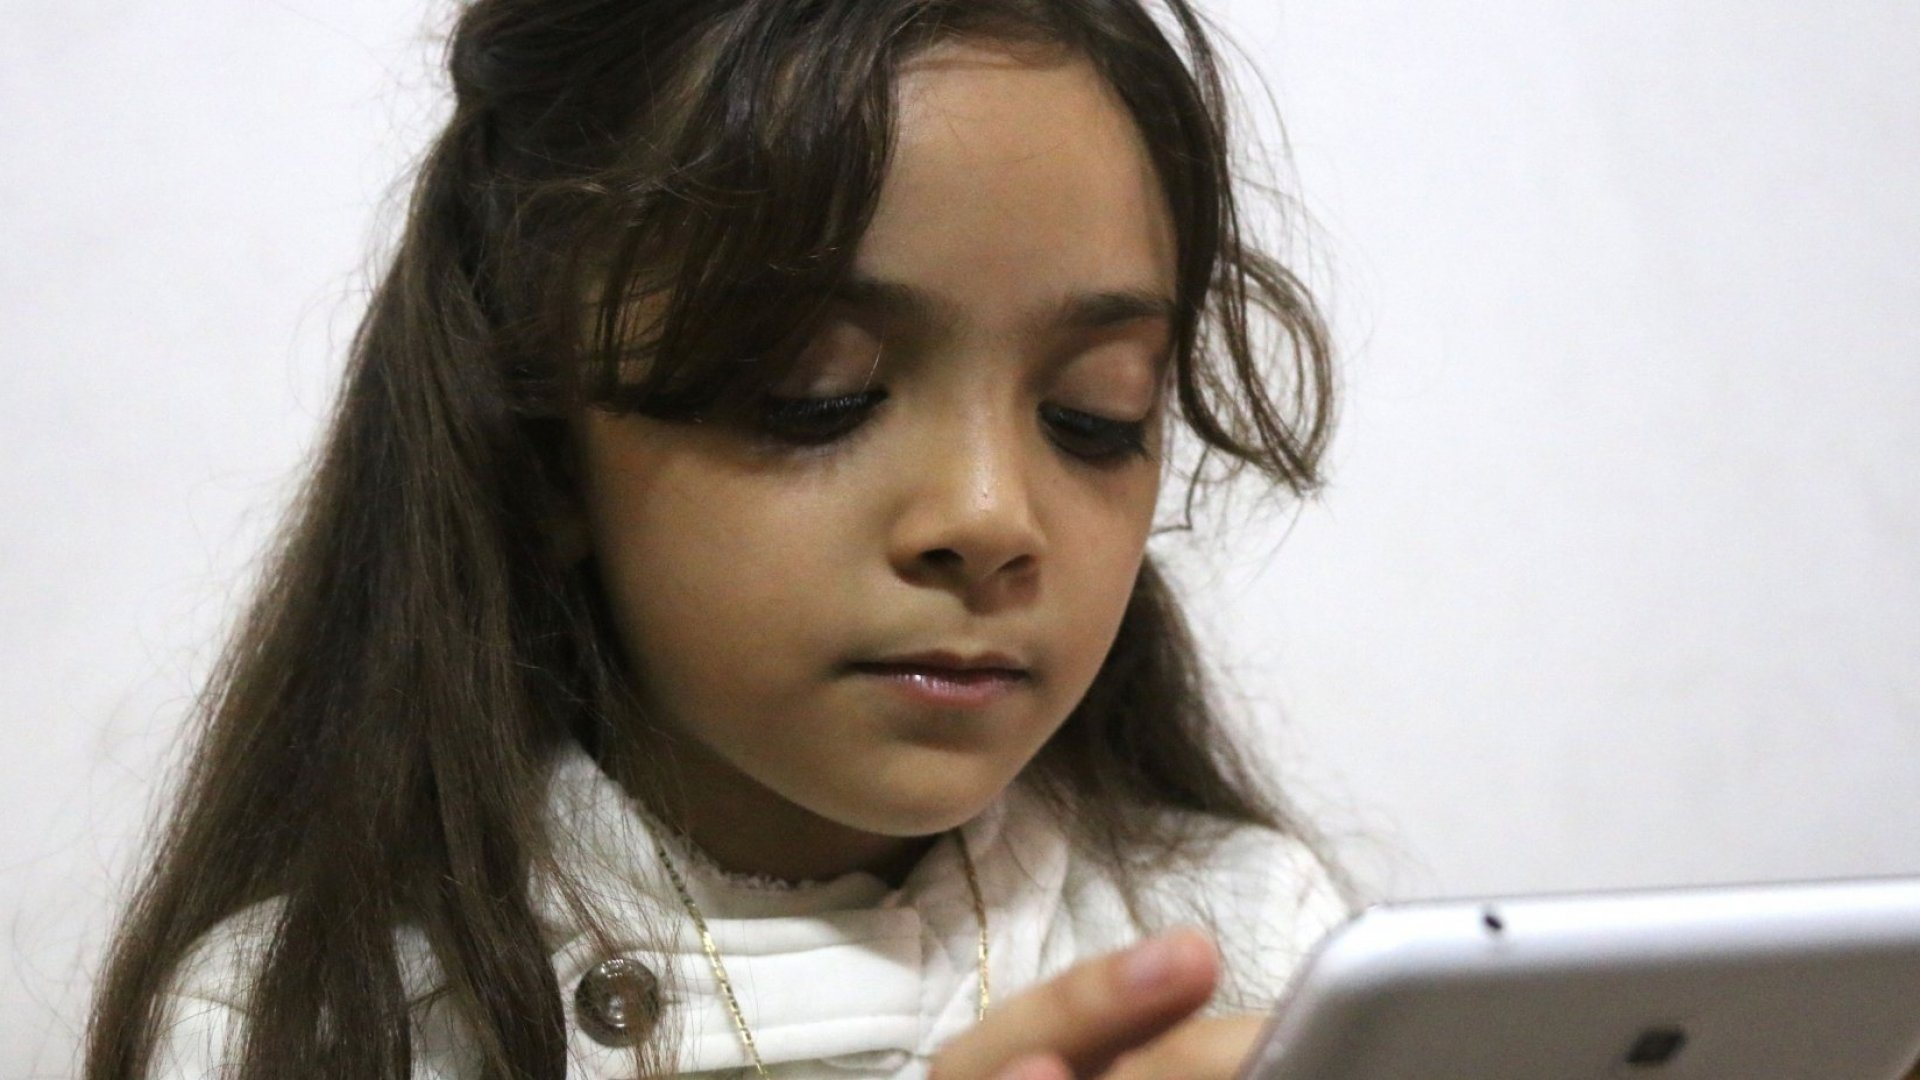 Eight-year-old Aleppo refugee Bana Alabed has more than 370,000 Twitter followers.